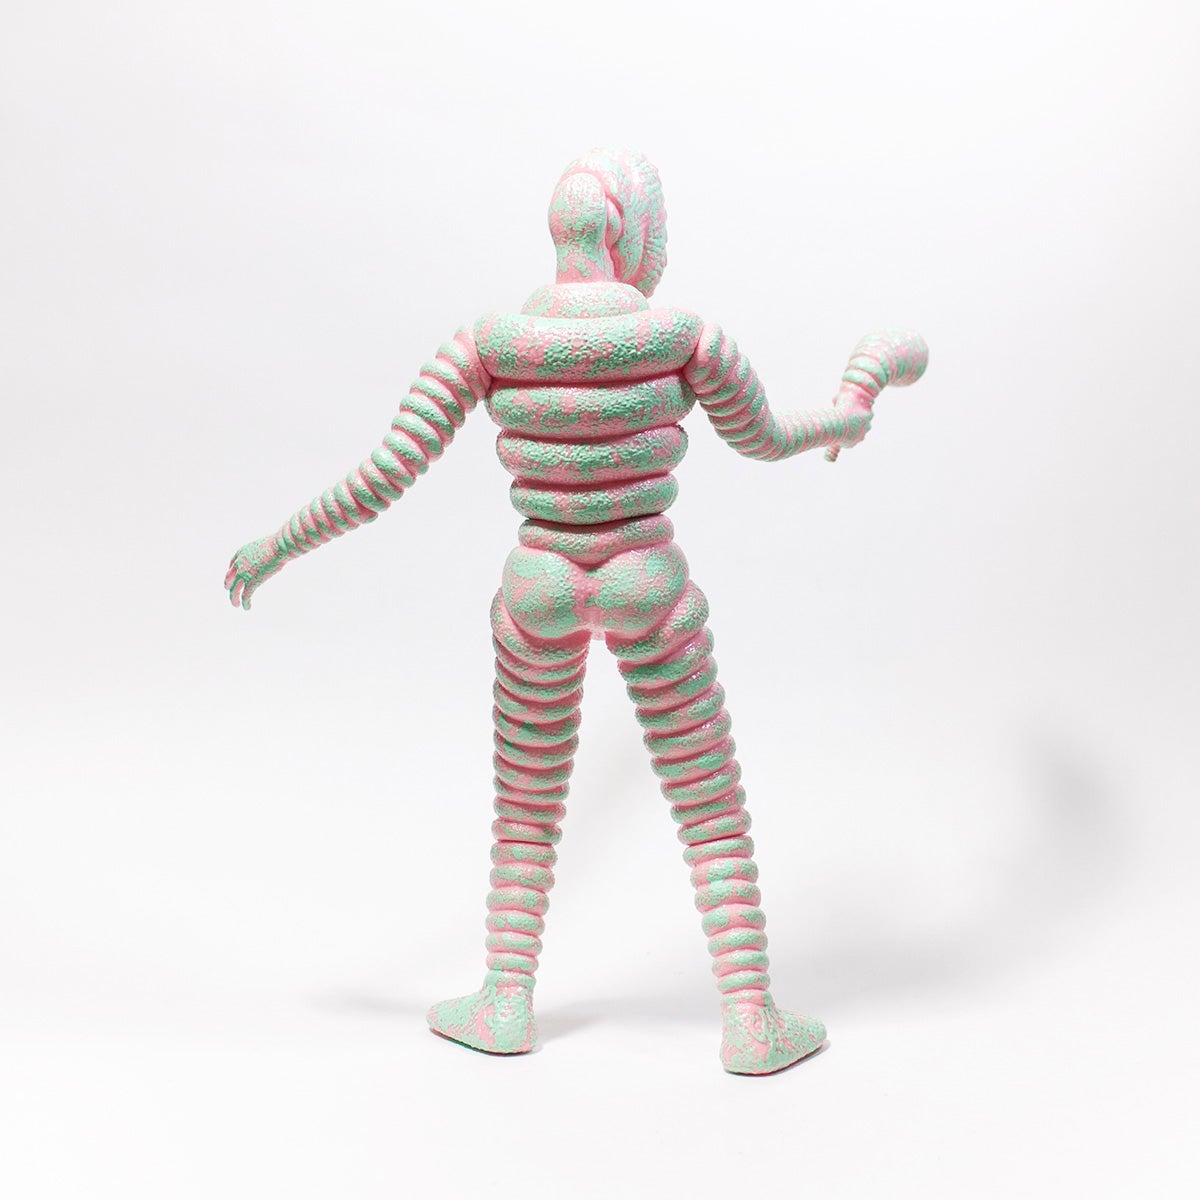 Image of MR ROTTEN DONUTS UNMASKED VINYL FIGURE